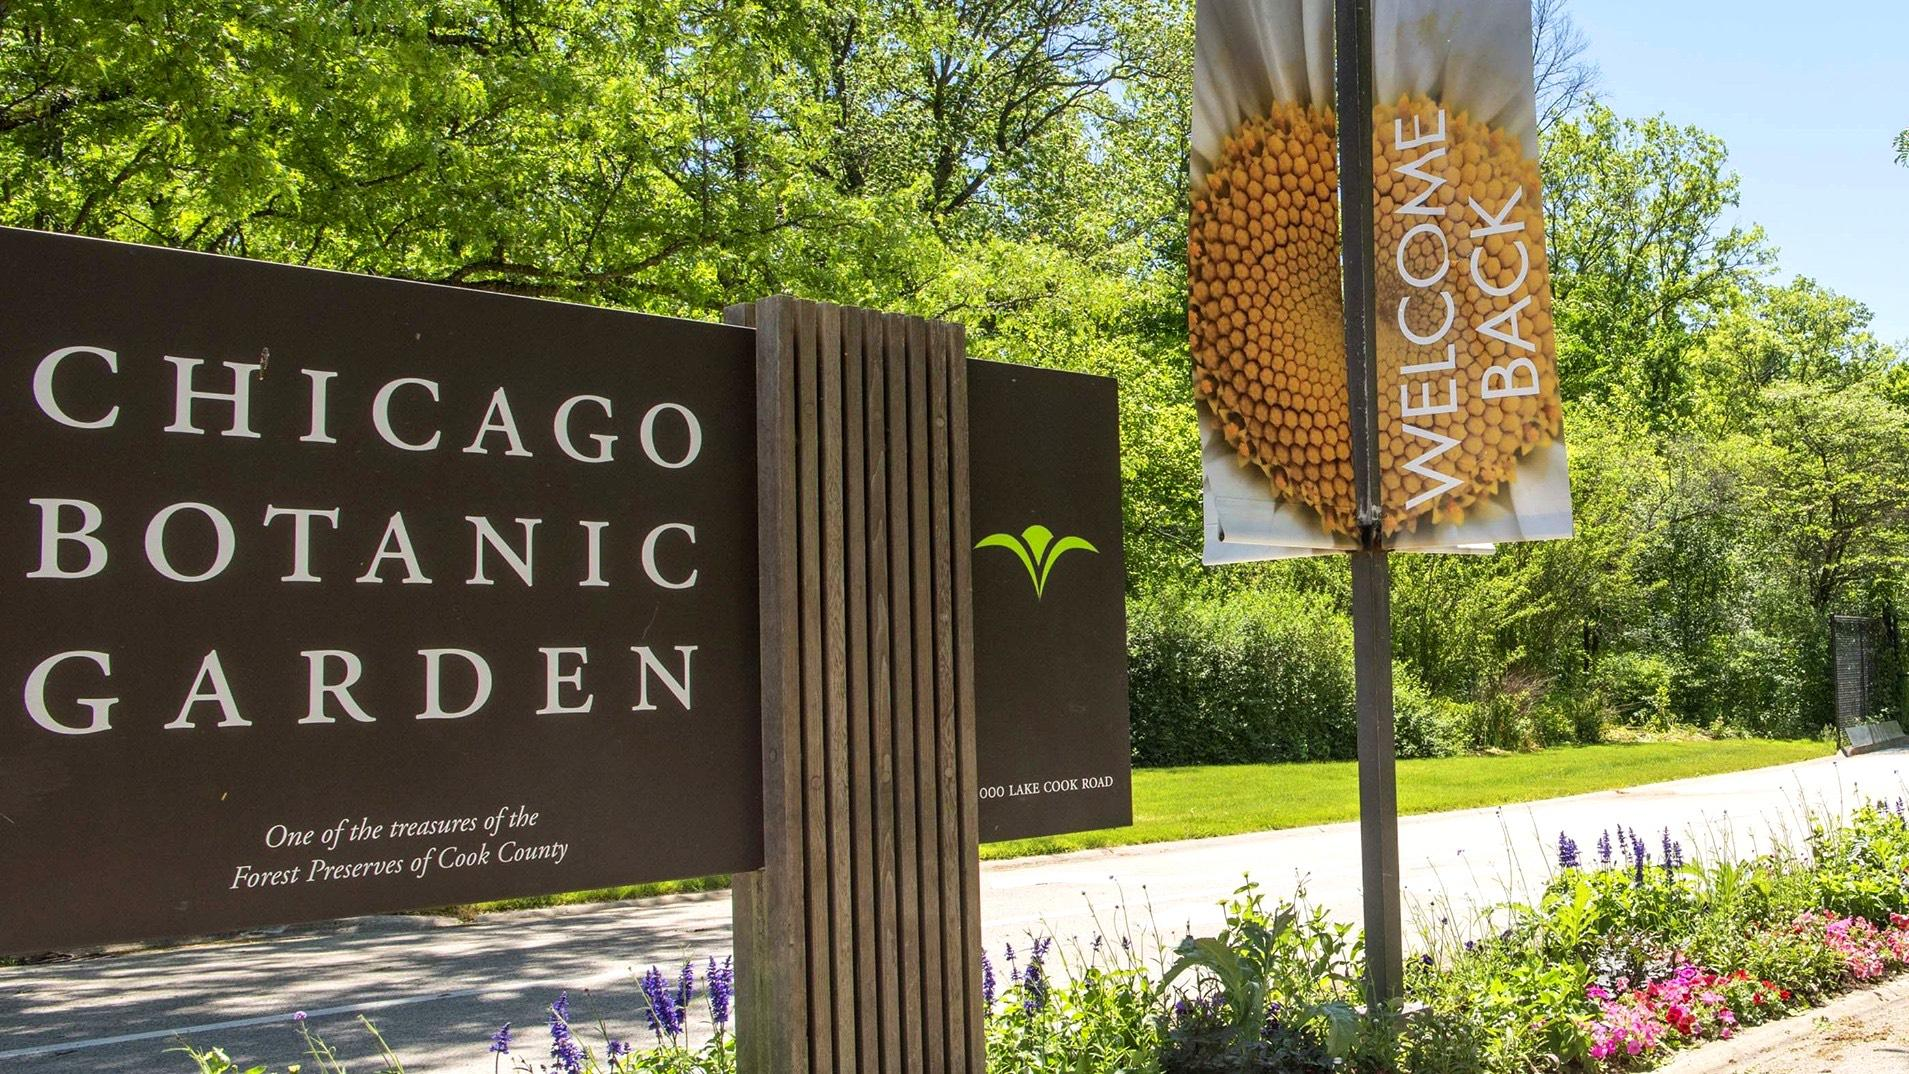 The Chicago Botanic Garden is welcoming visitors back starting June 24. (Chicago Botanic Garden)